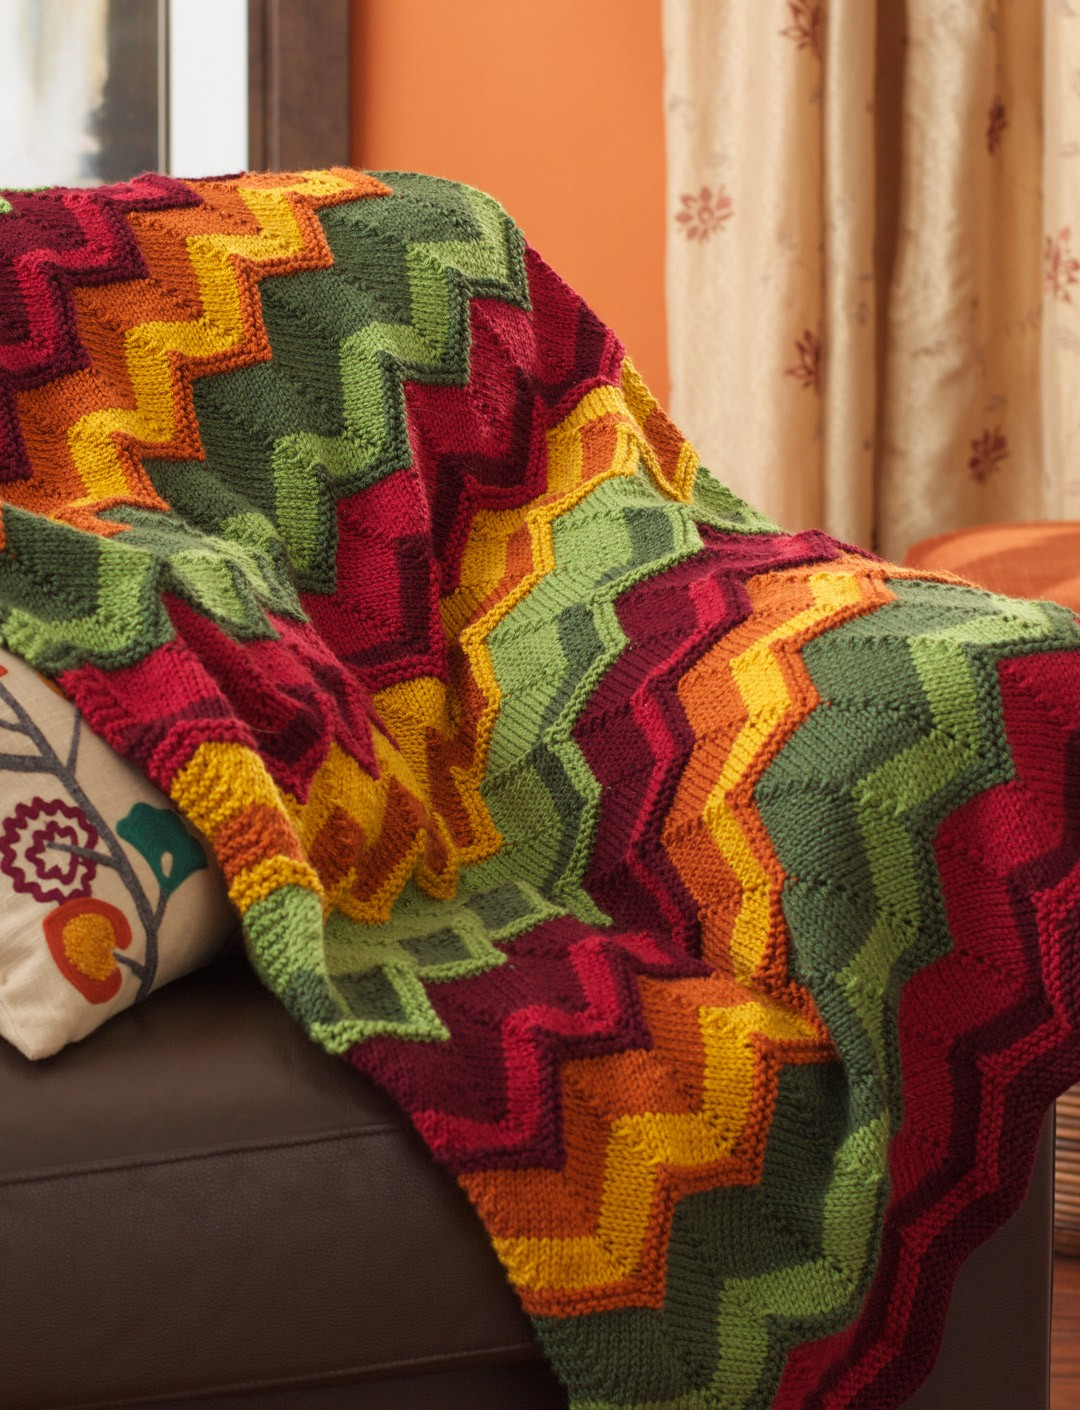 Free Knitting Pattern For Chevron Blanket : Patons Spicy Chevron Blanket, Knit Pattern Yarnspirations